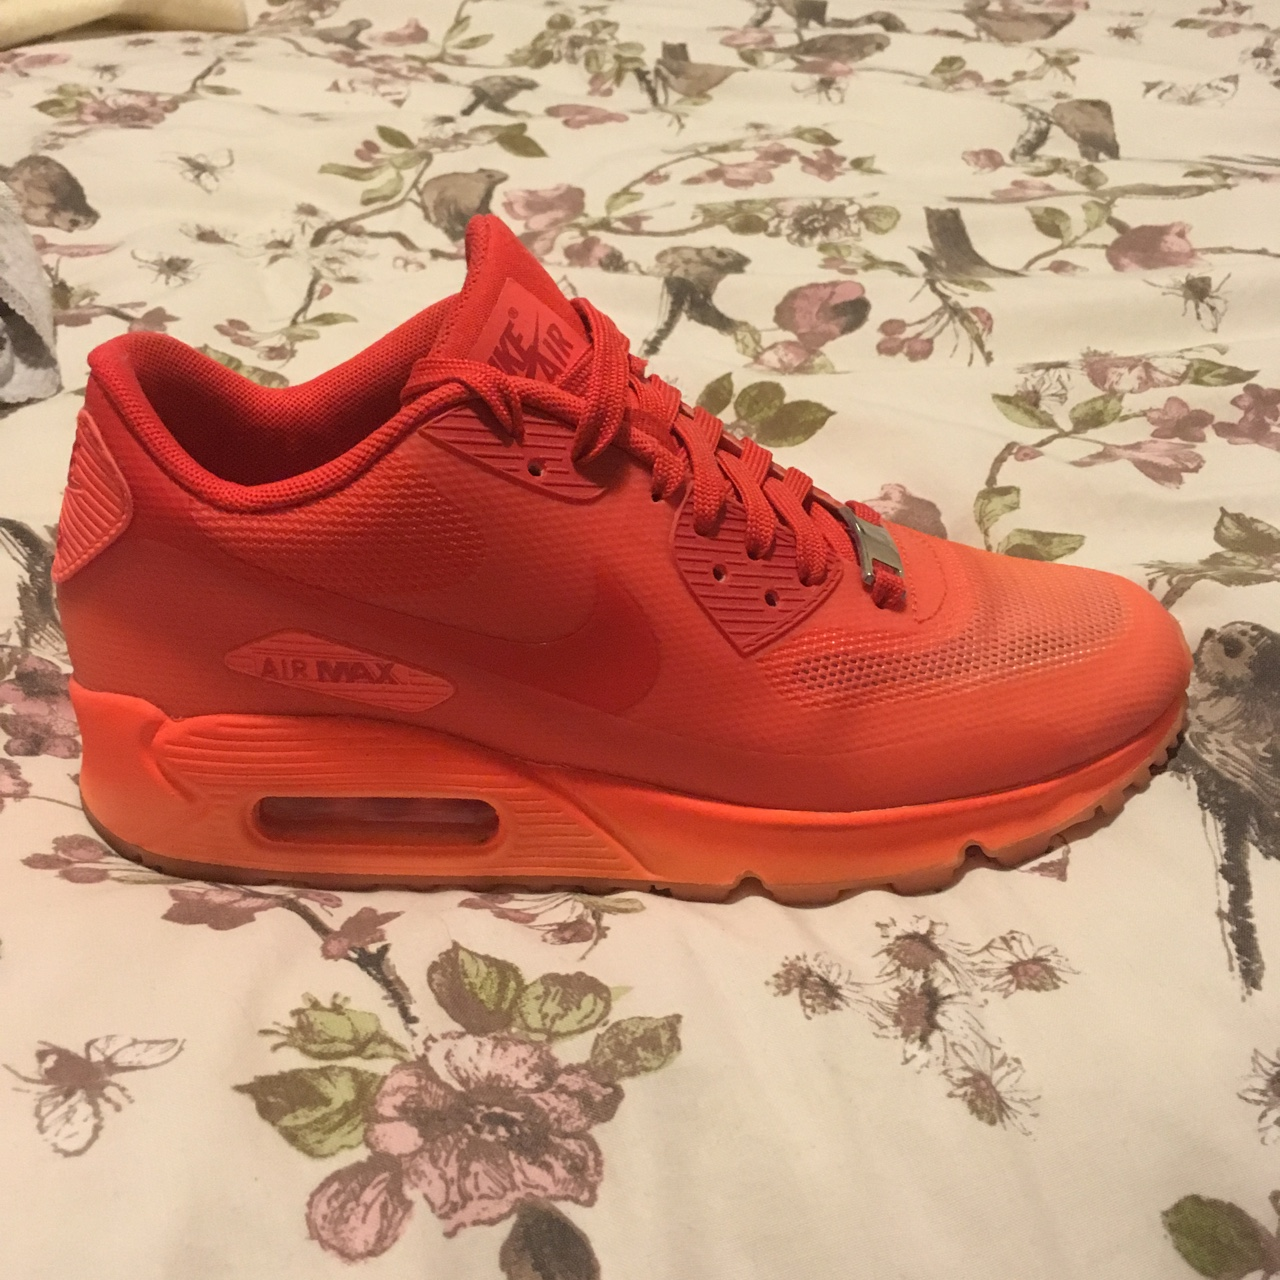 Nike Air Max 90 Milano Size 4 Worn once and in Depop